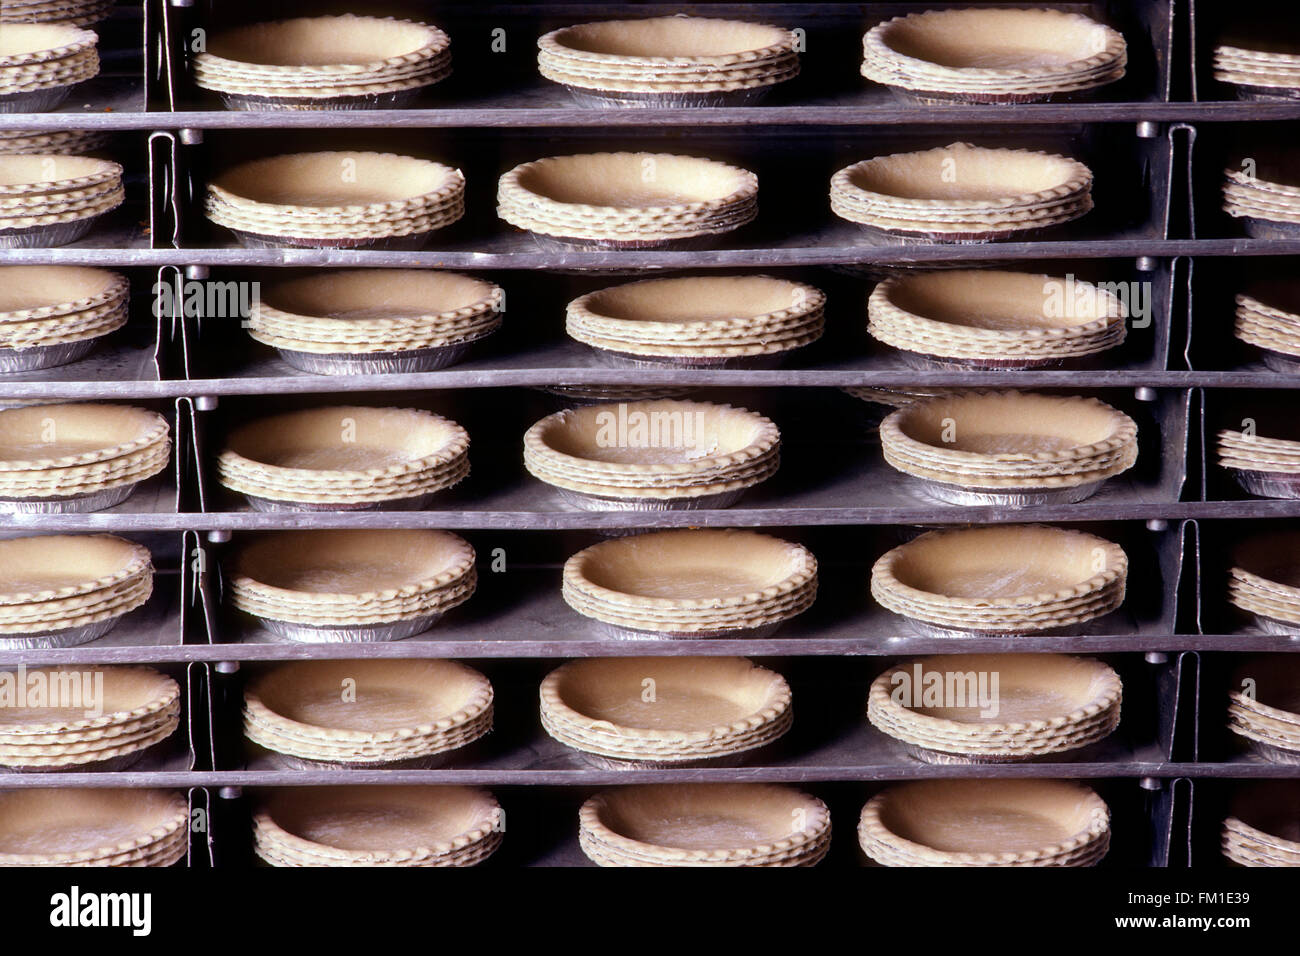 Mrs. Smith's pie crusts on commercial bakery production line - Stock Image